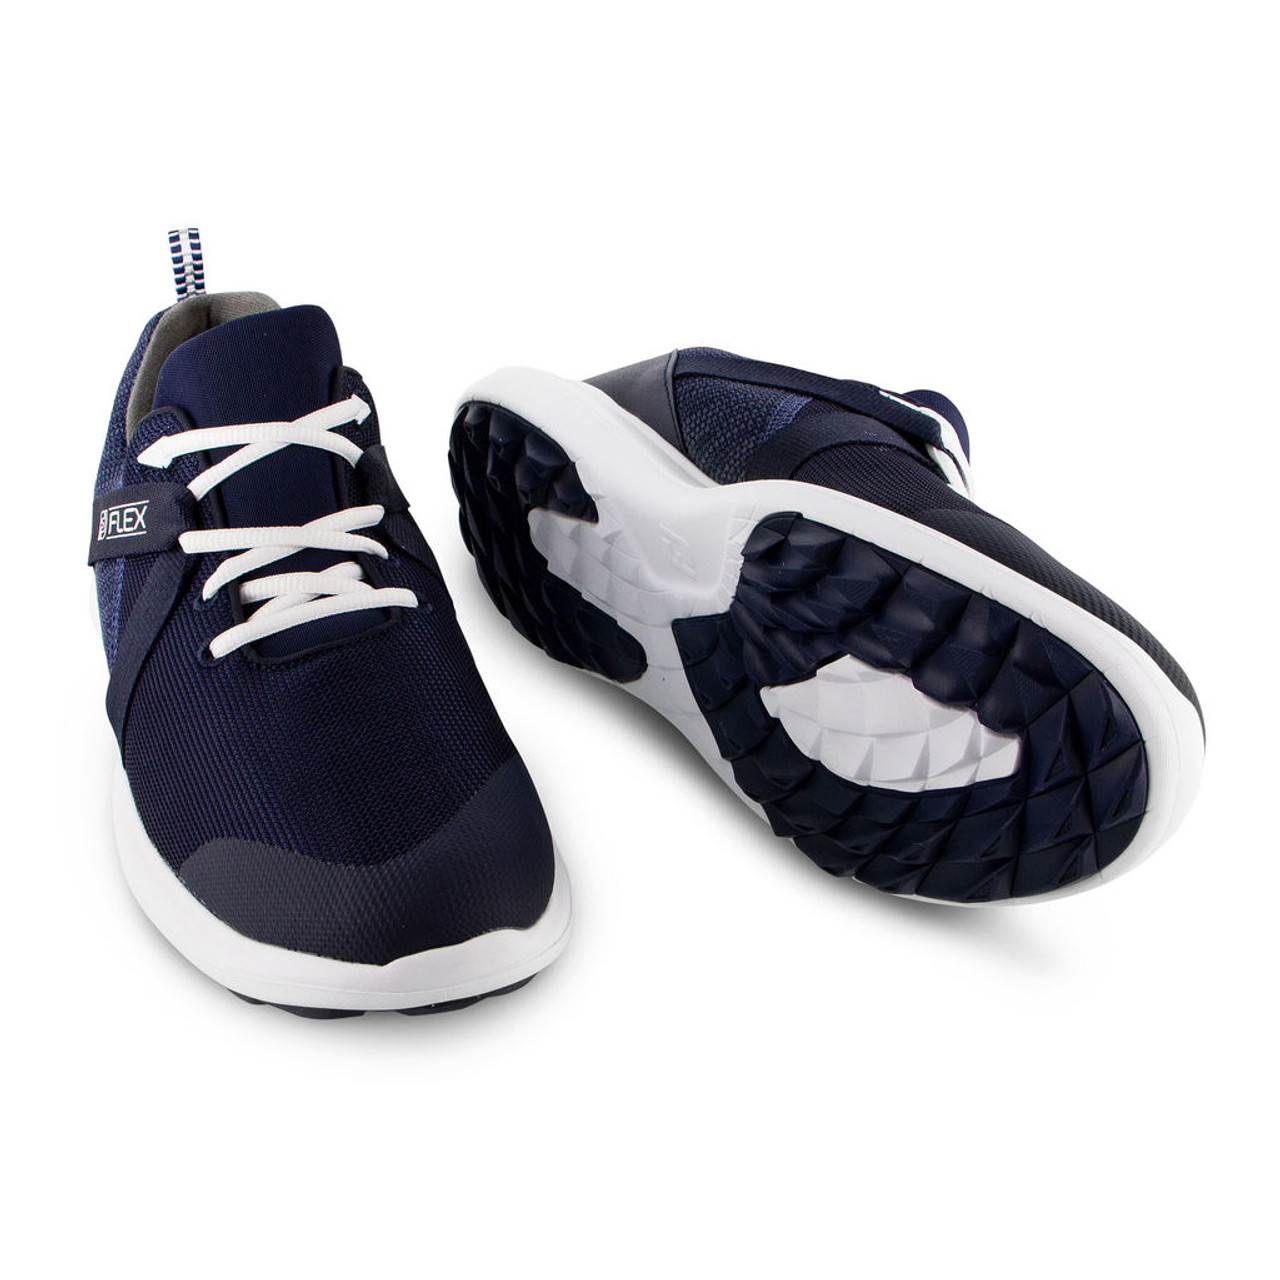 FootJoy FJ Flex Golf Shoes - Navy (56102)